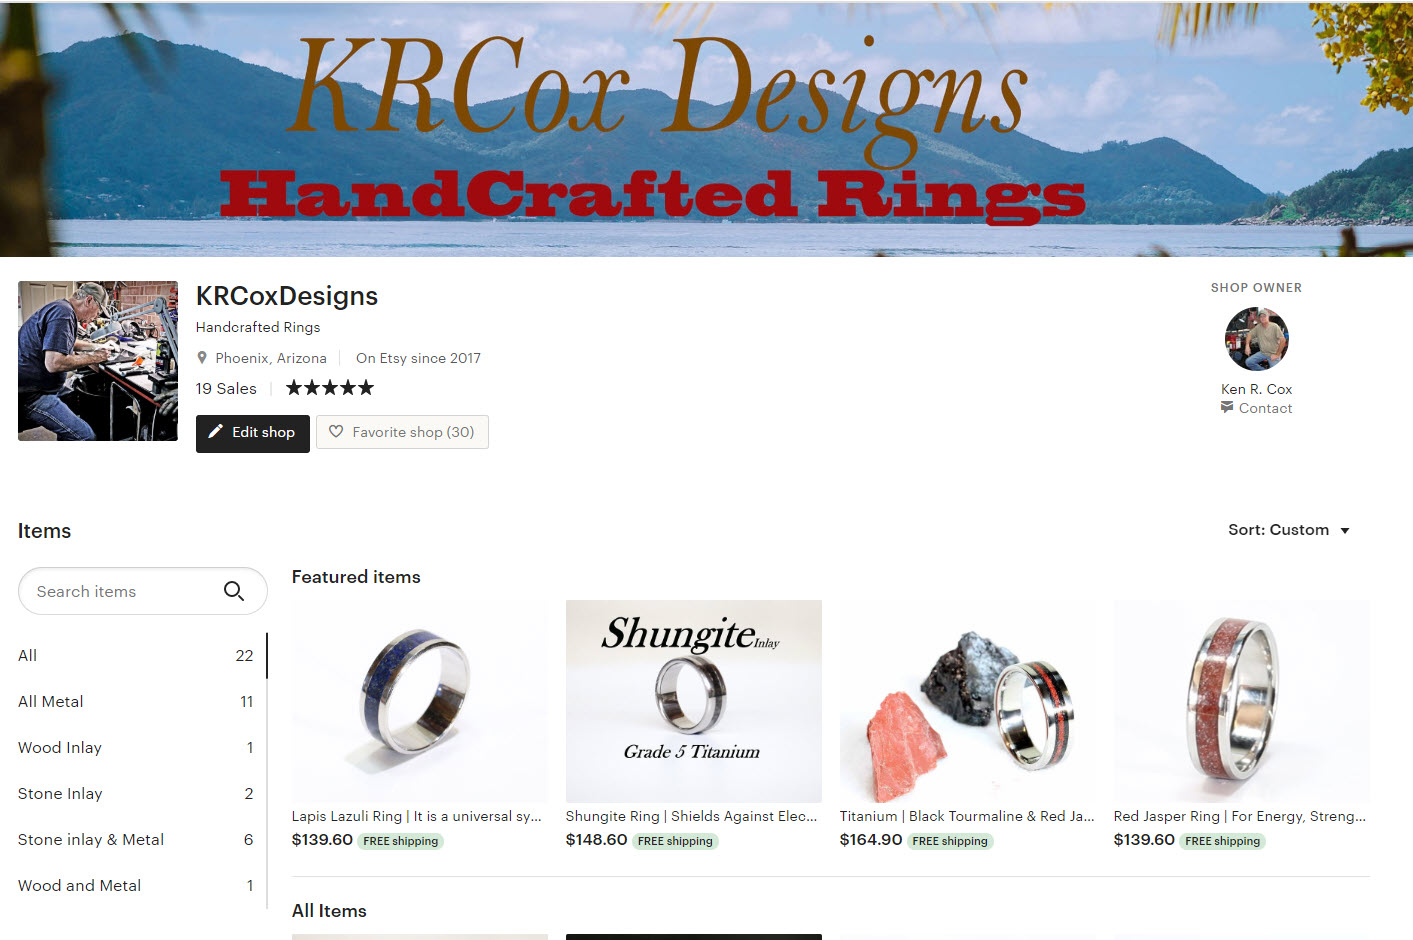 KRCox Designs